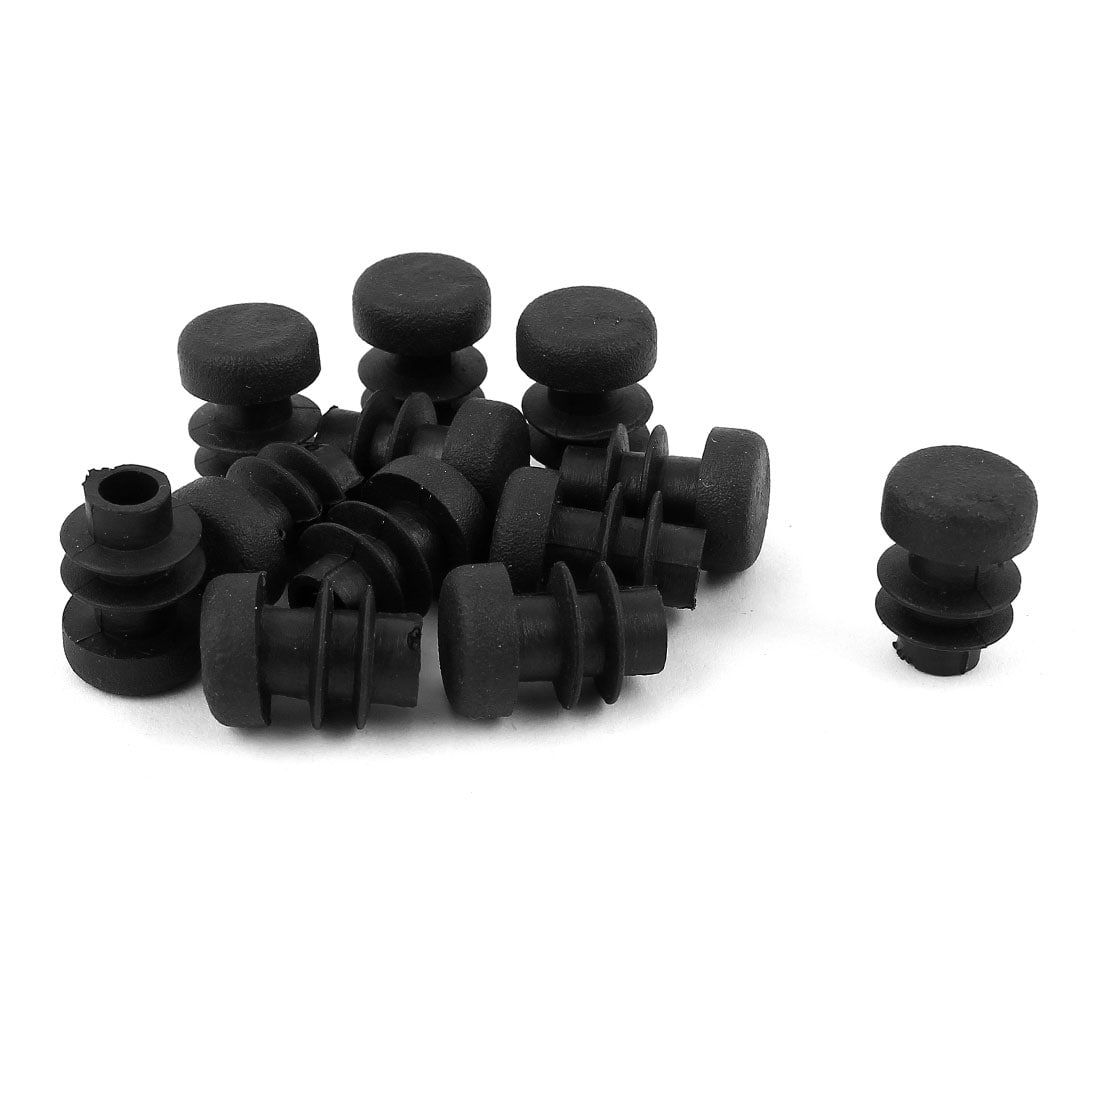 Nhbr Plastic Round Tubing Tube Insert Plug Cap Bung 28mm Dia 20pcs Black Furniture